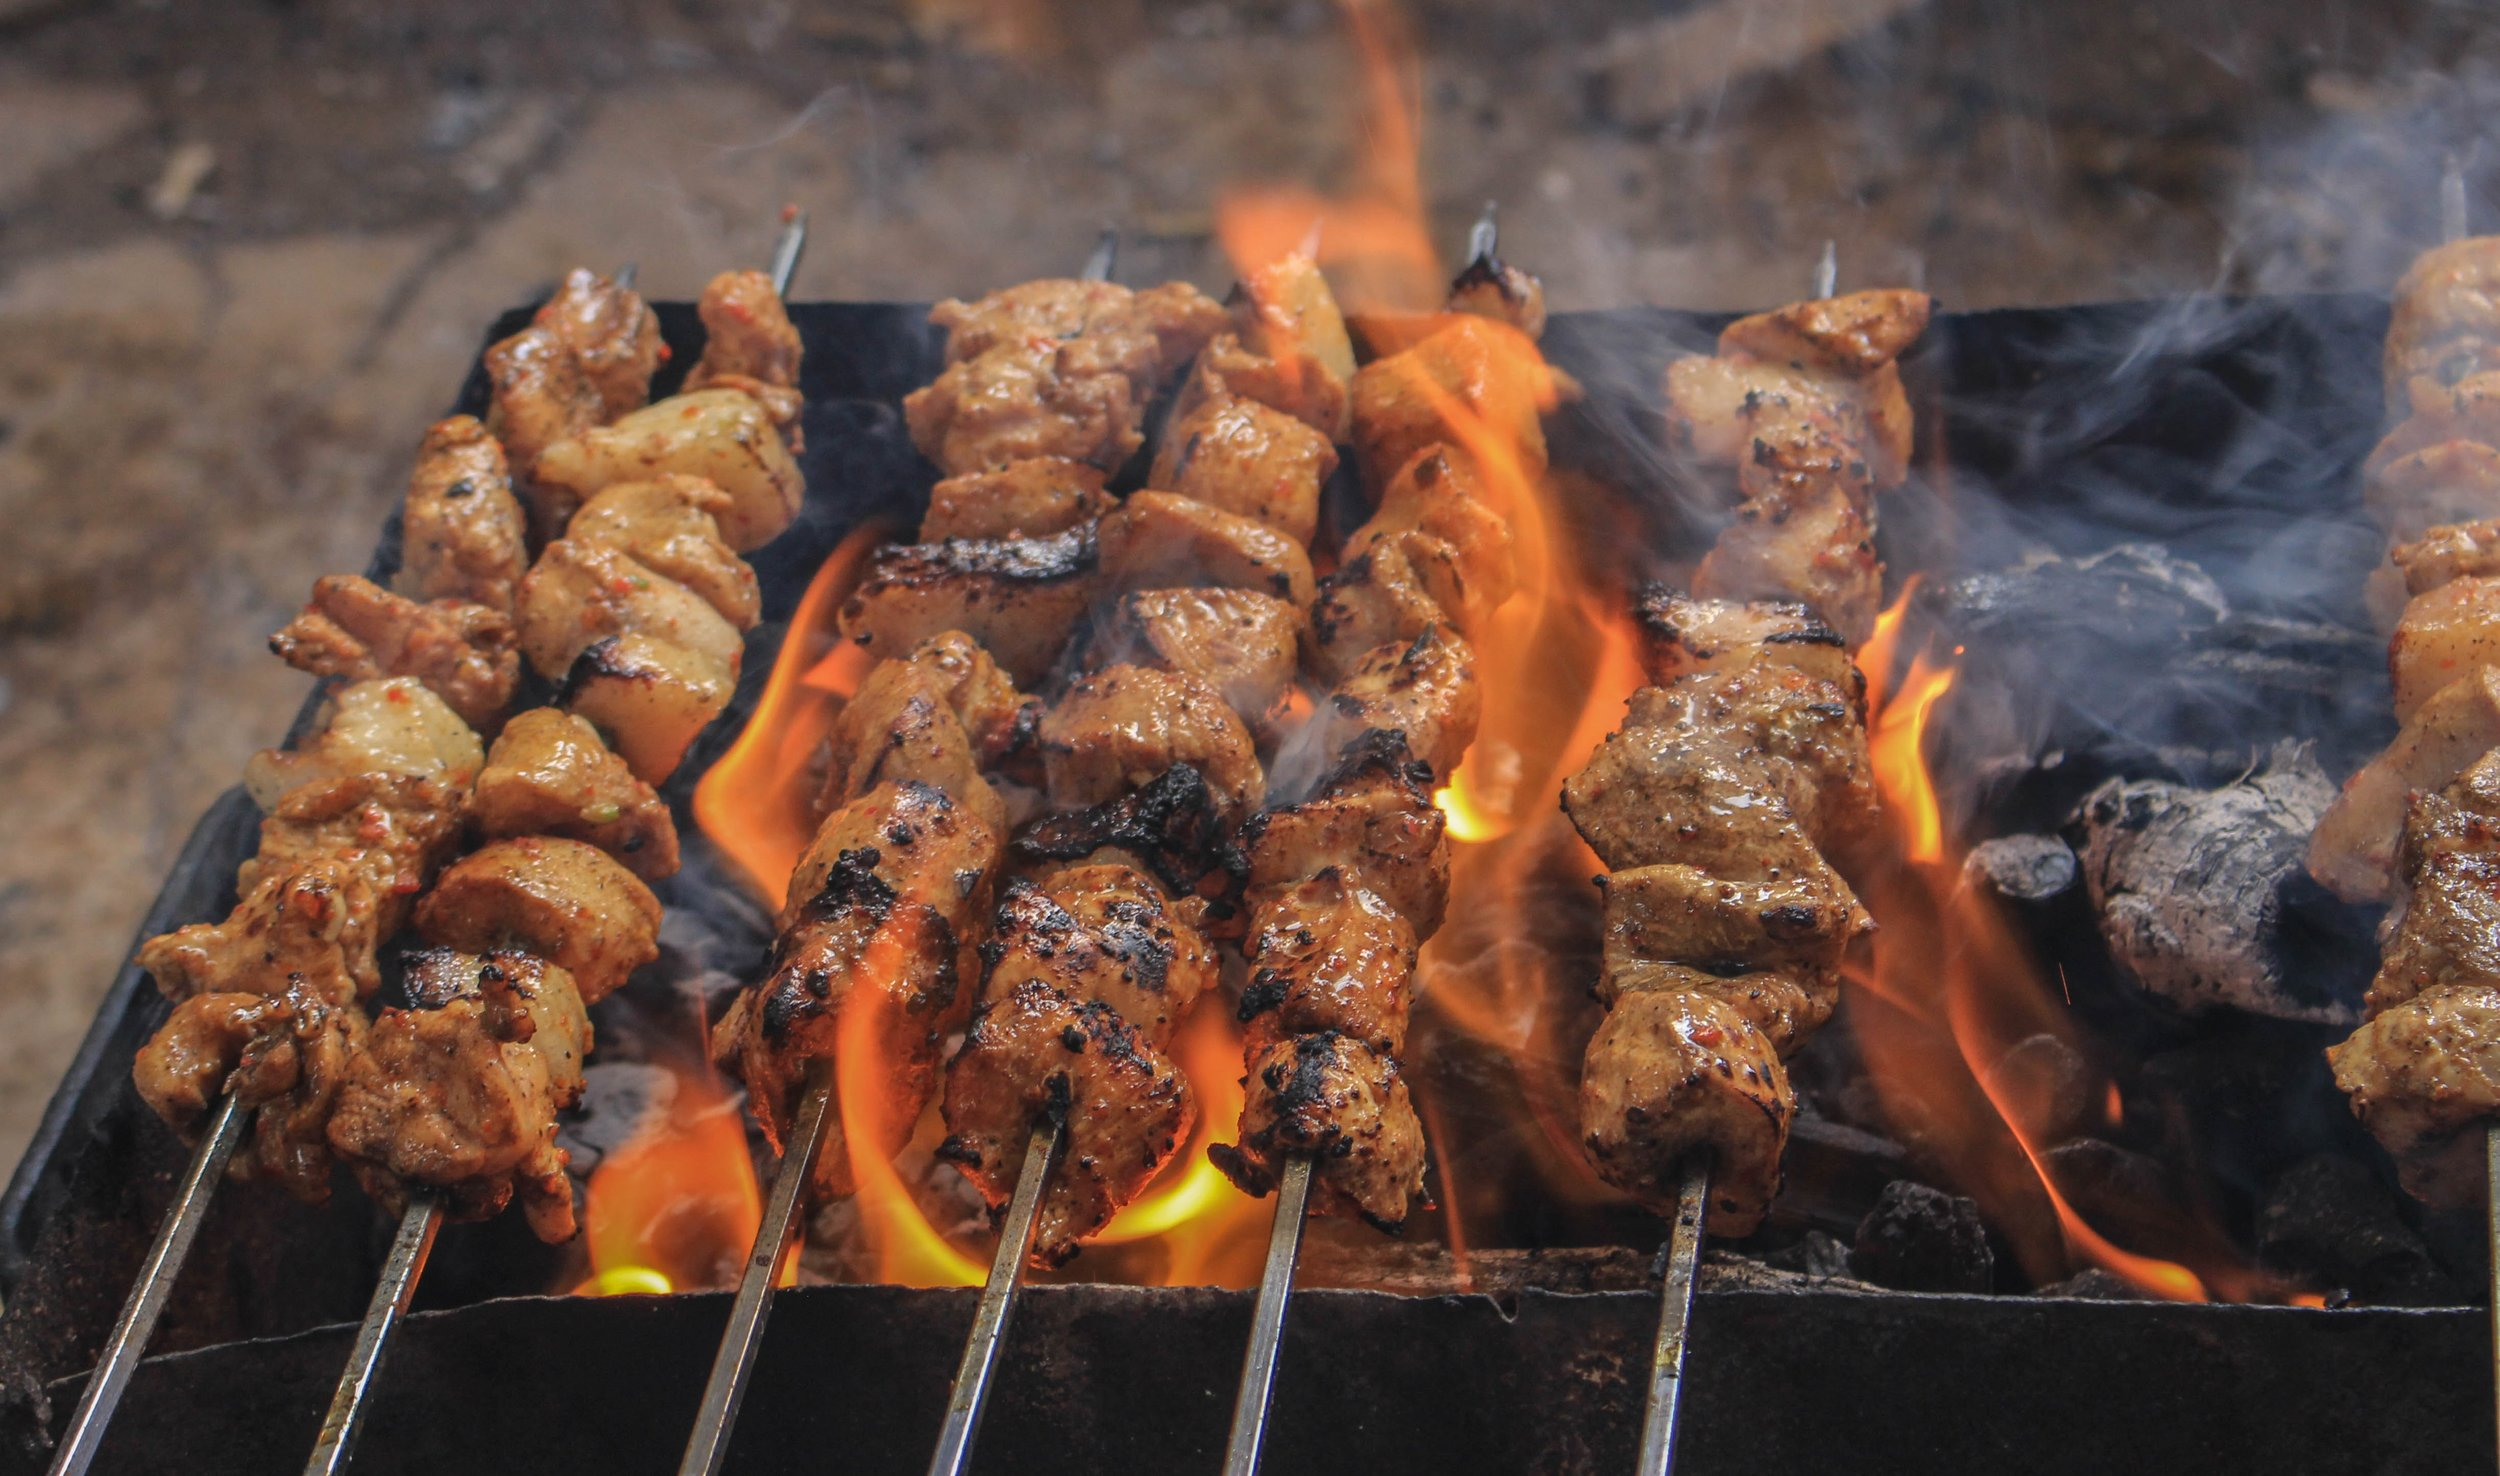 25th & 26th August - Beer, Music & BBQ -